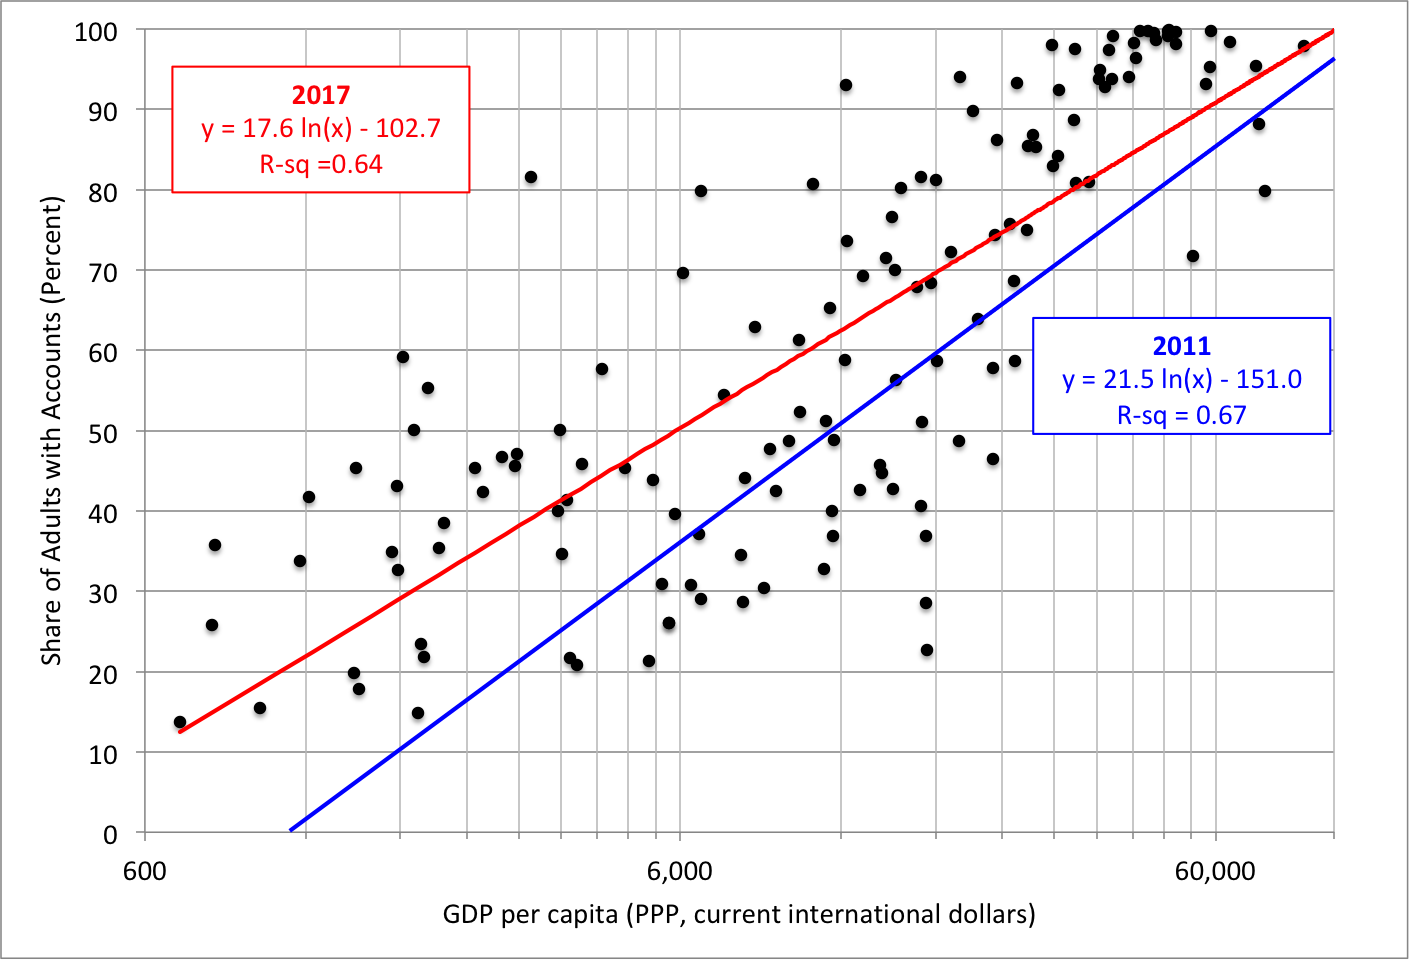 Notes: Financial access means having an account at a financial institution or a mobile phone payments account. An adult is at least 15 years old. The red line is the fit for the 2017 sample that includes 140 countries (black dots). The blue line is the fit for the 2011 data (not shown). The horizontal scale is logarithmic. Sources:  World Bank Findex  (2017),  World Bank development database , and authors' regressions.